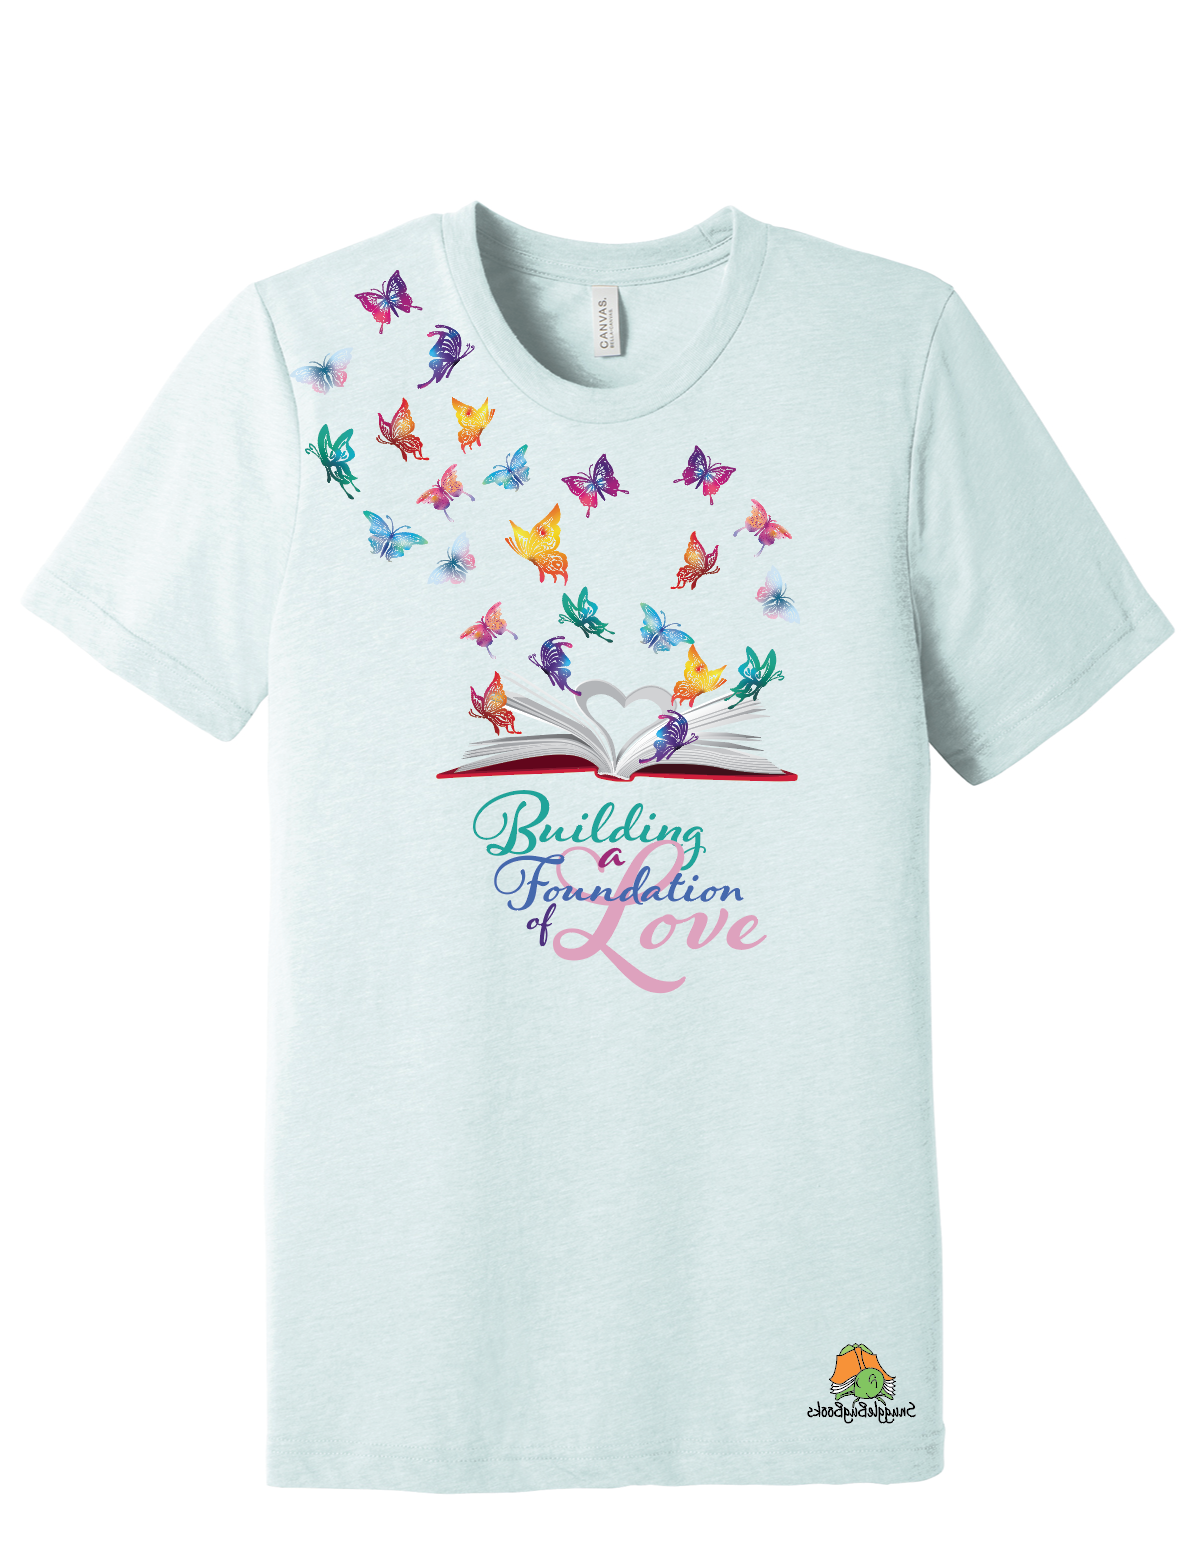 Building a Foundation of Love - Snuggle Bug Books Tri-Blend T-Shirt